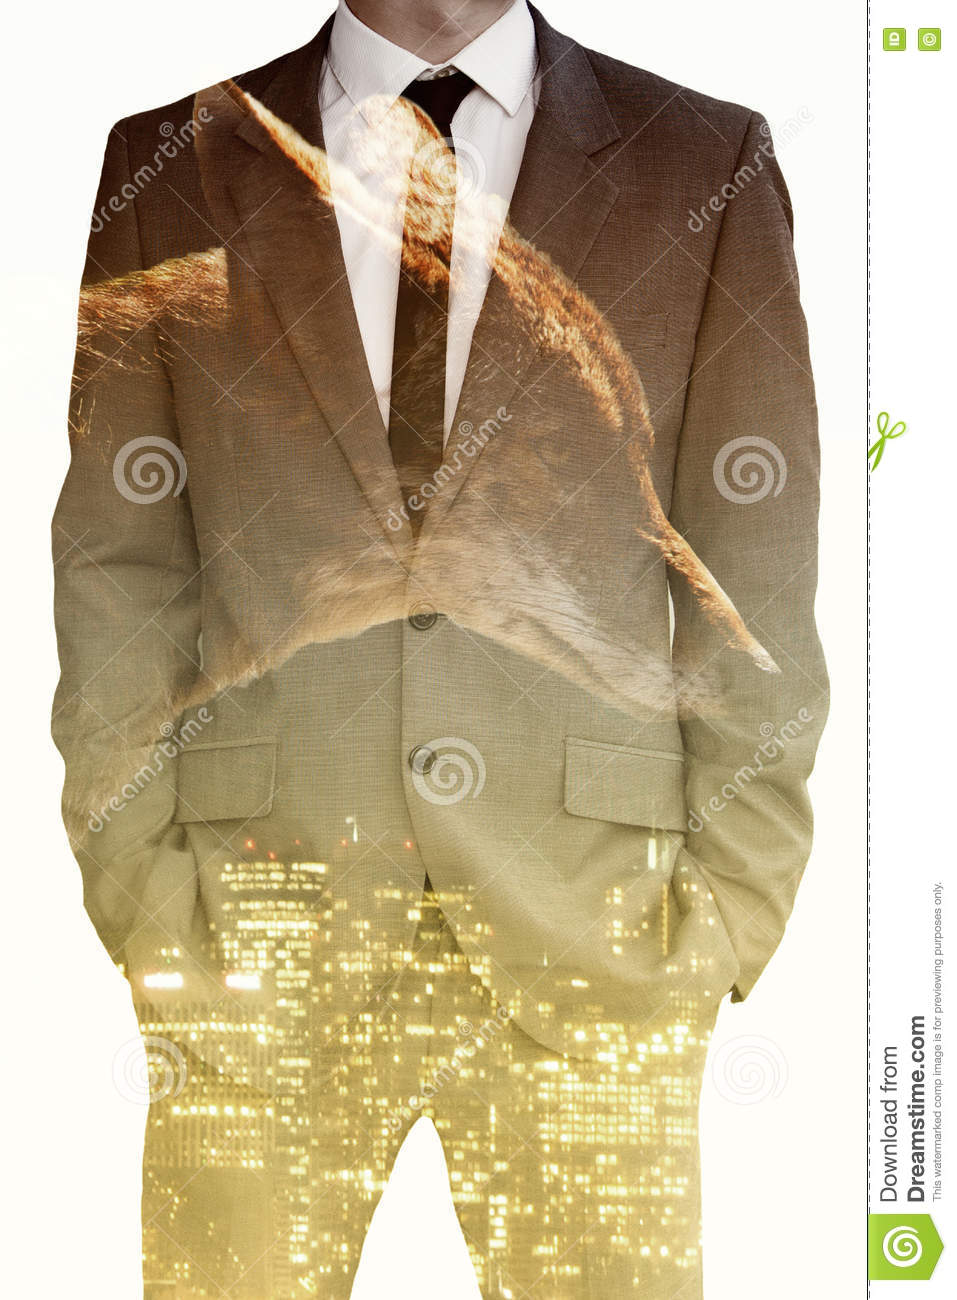 c14109a8ef115 Double Exposure Of Businessman , Coyote And Cityscape Stock Photo ...